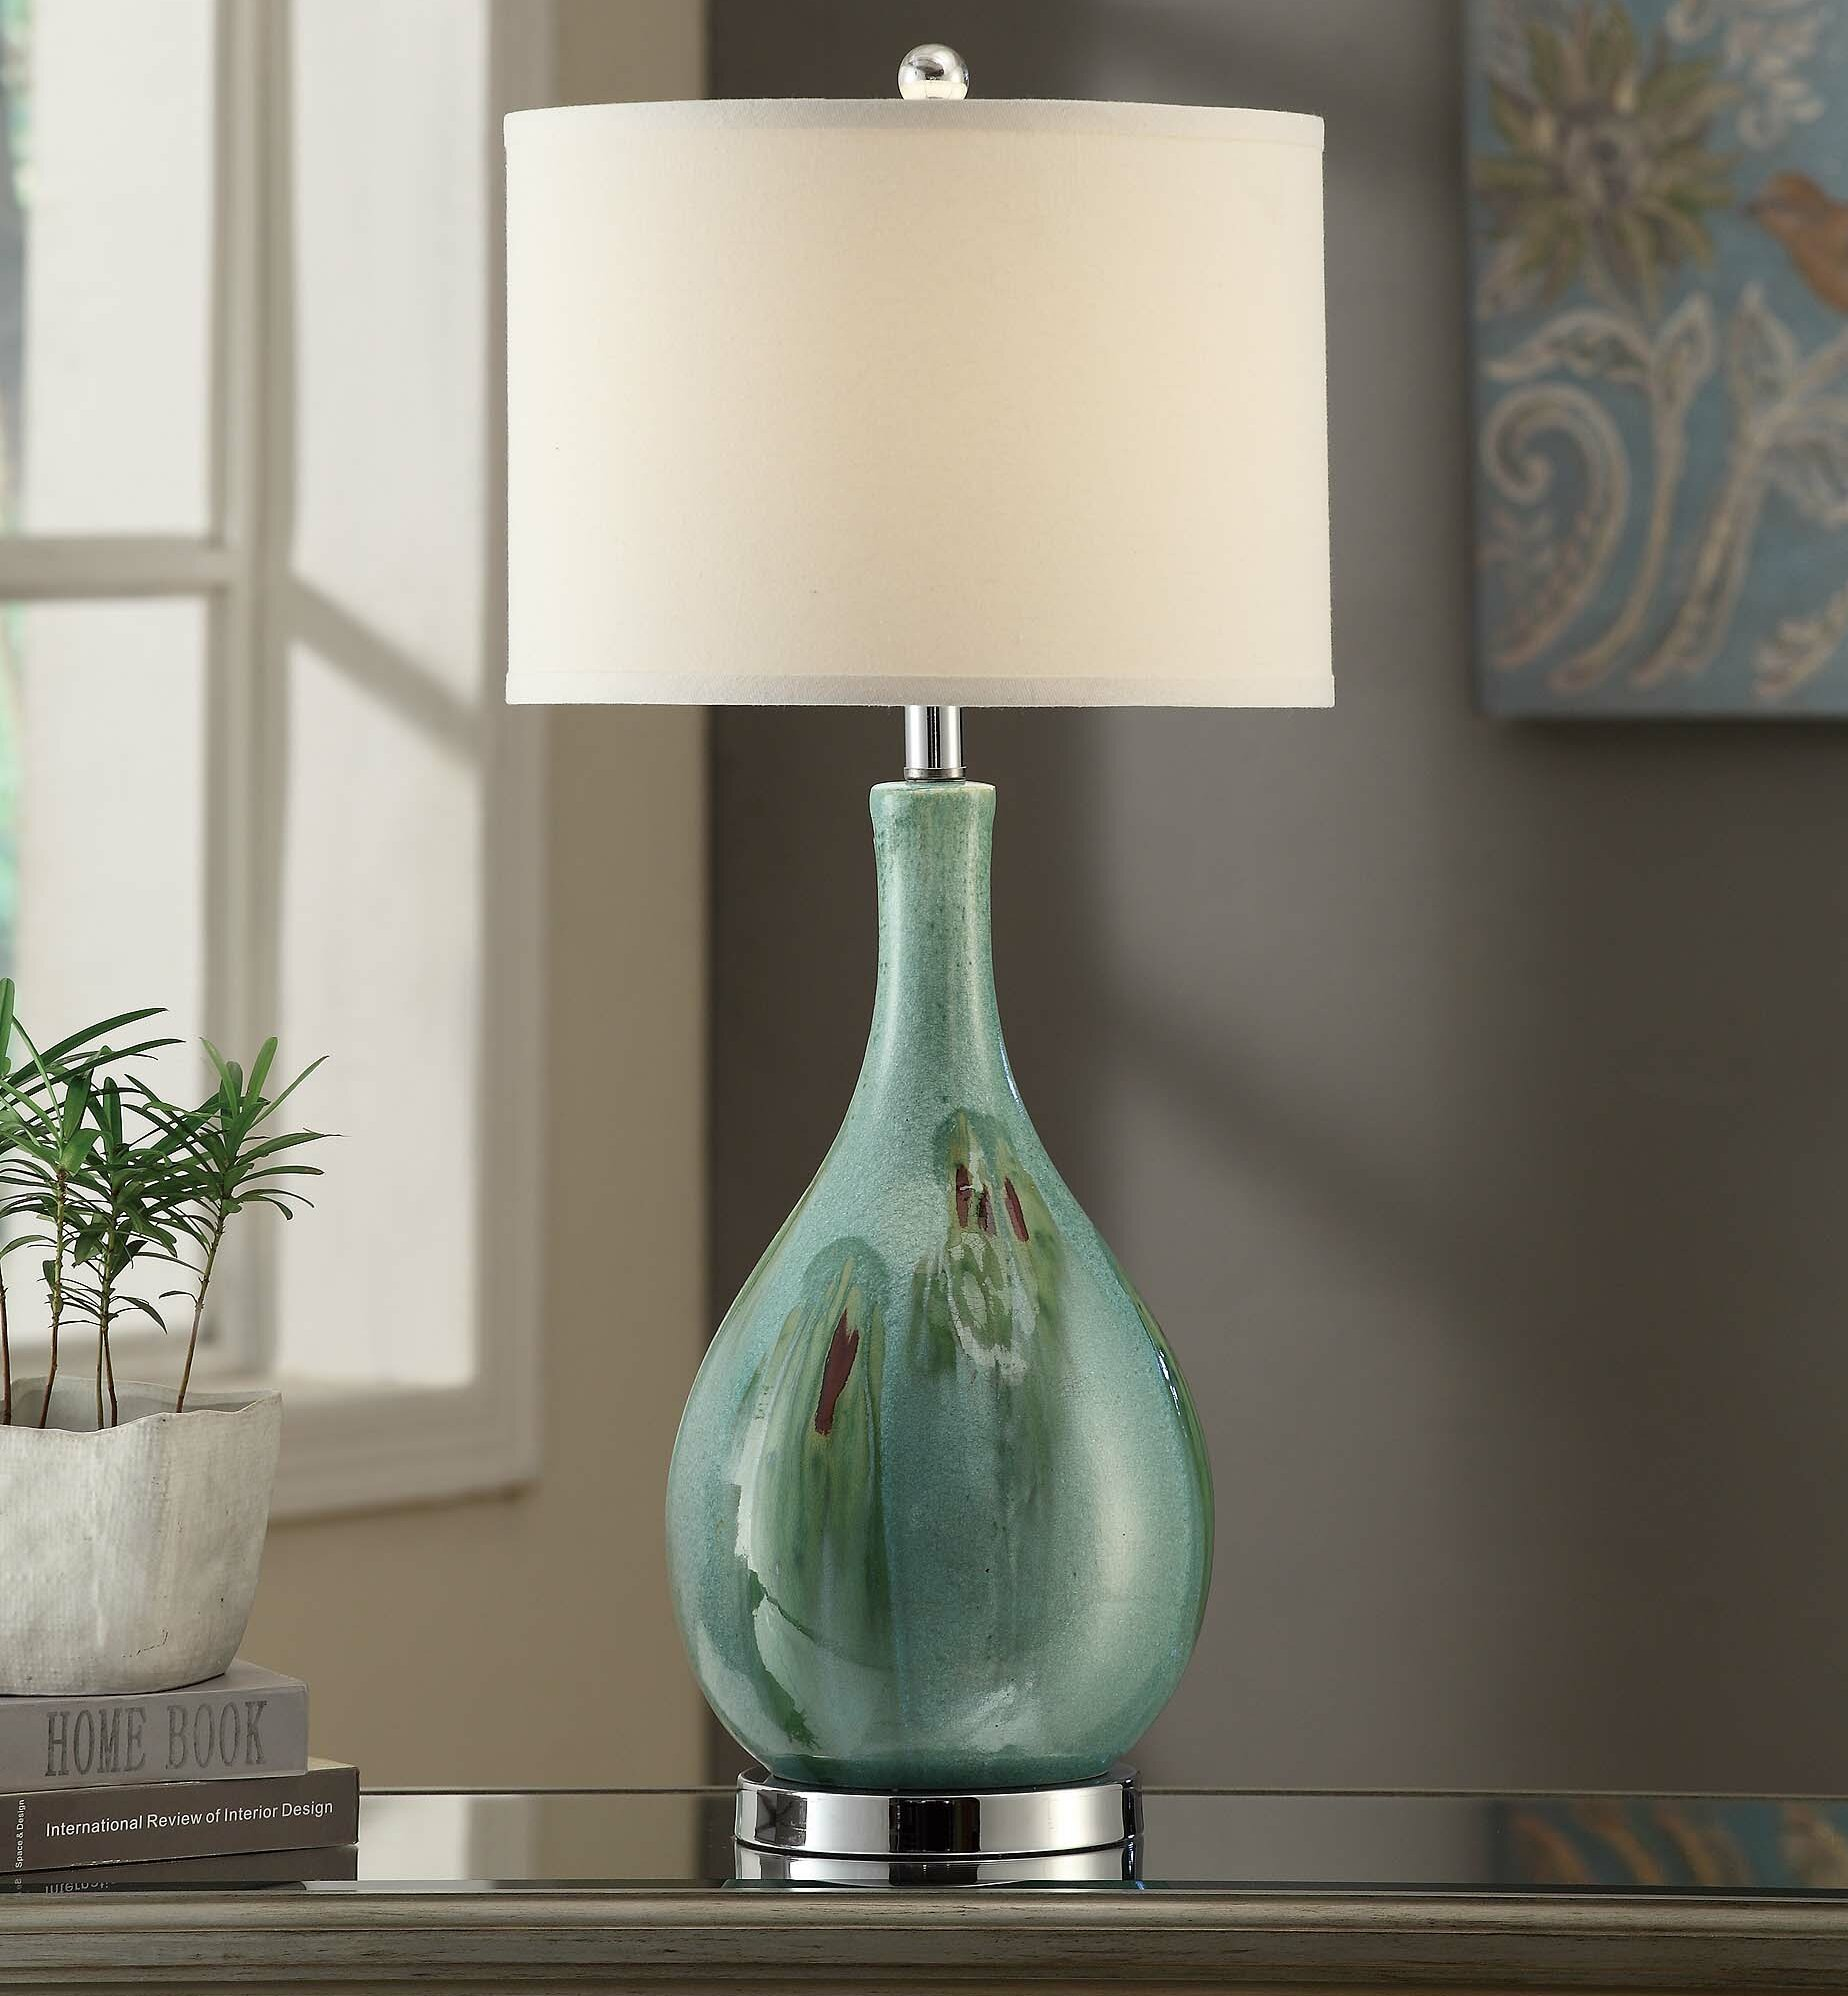 Beachcrest Home Osborne Sea Scape 30 Table Lamp Reviews Wayfair At Light Fixture Box Proceeds To First 3way Switch A 4